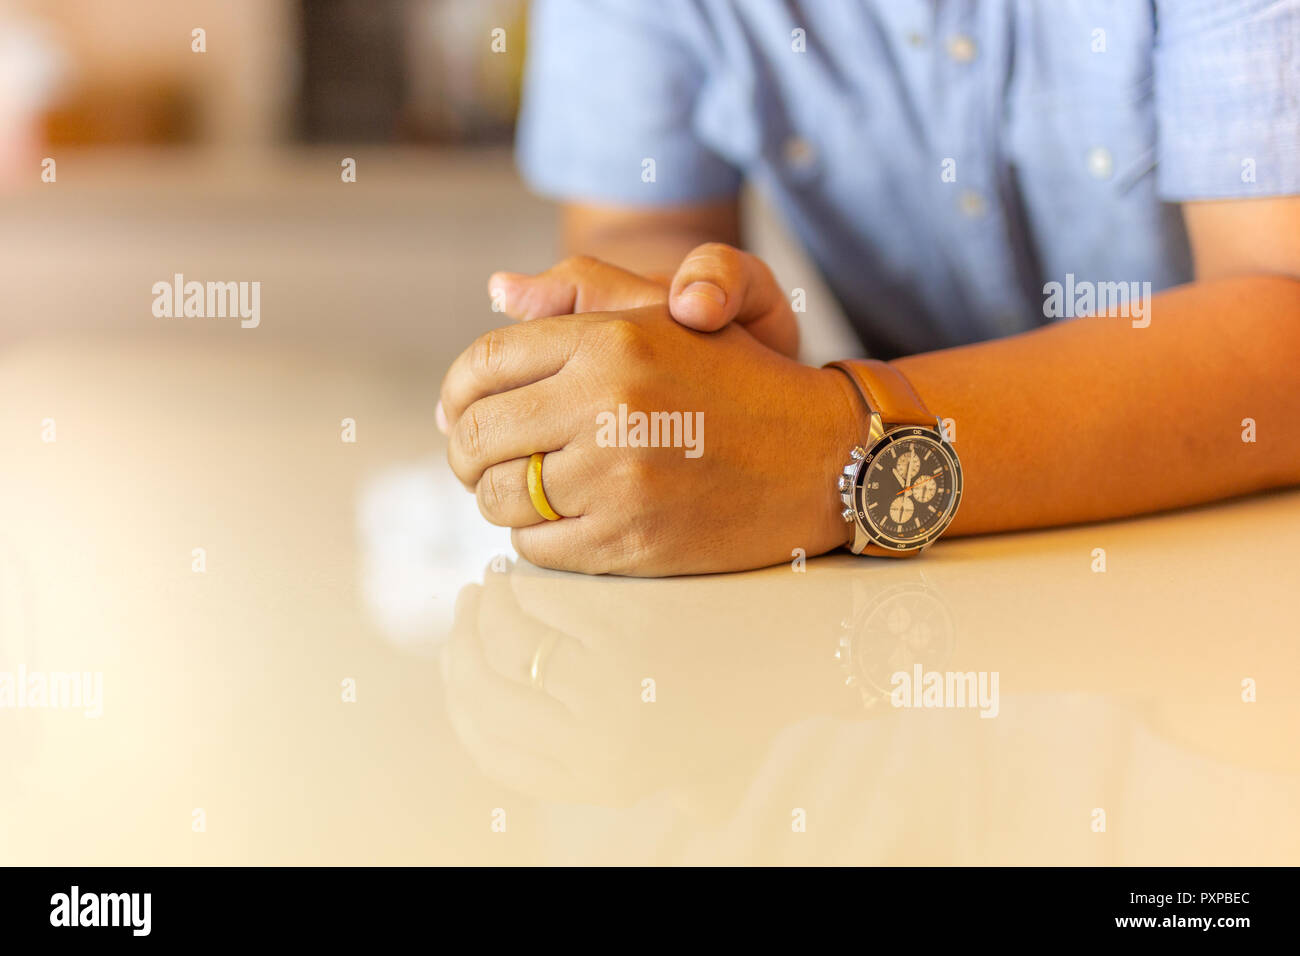 Man's left hand with gold wedding ring on his finger on marble table. - Stock Image